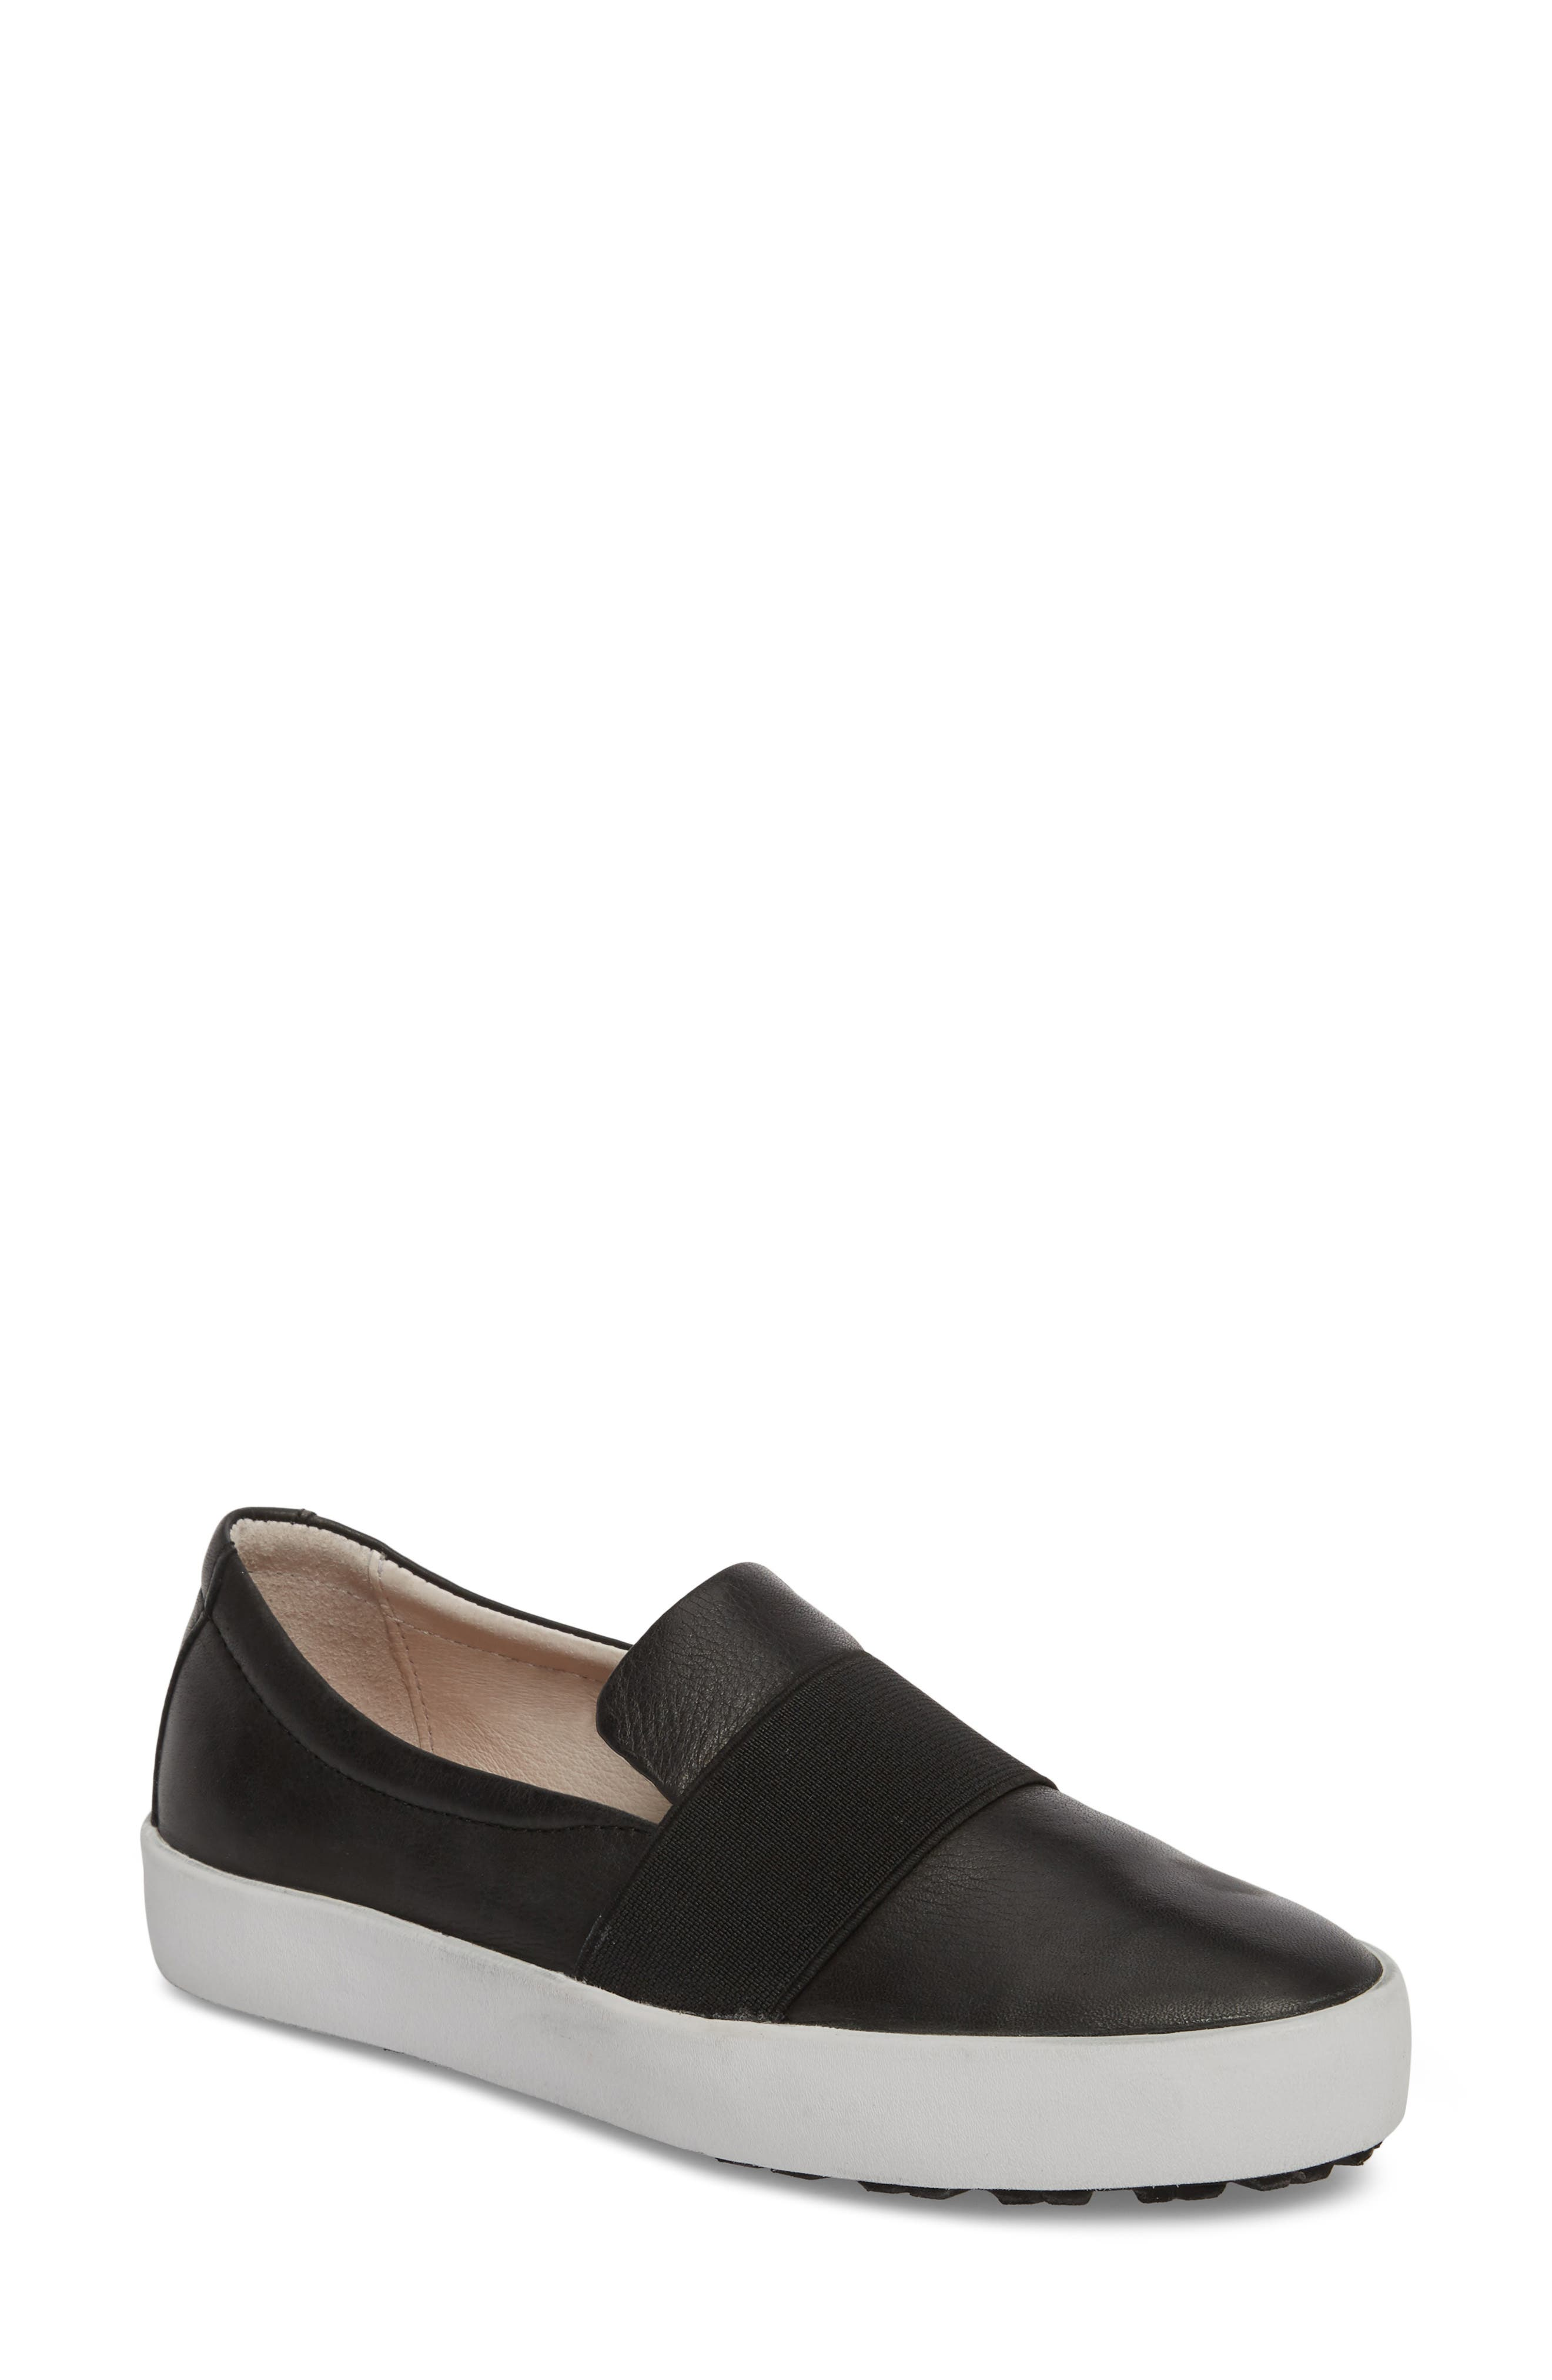 PL99 Slip-On Sneaker,                         Main,                         color, BLACK LEATHER